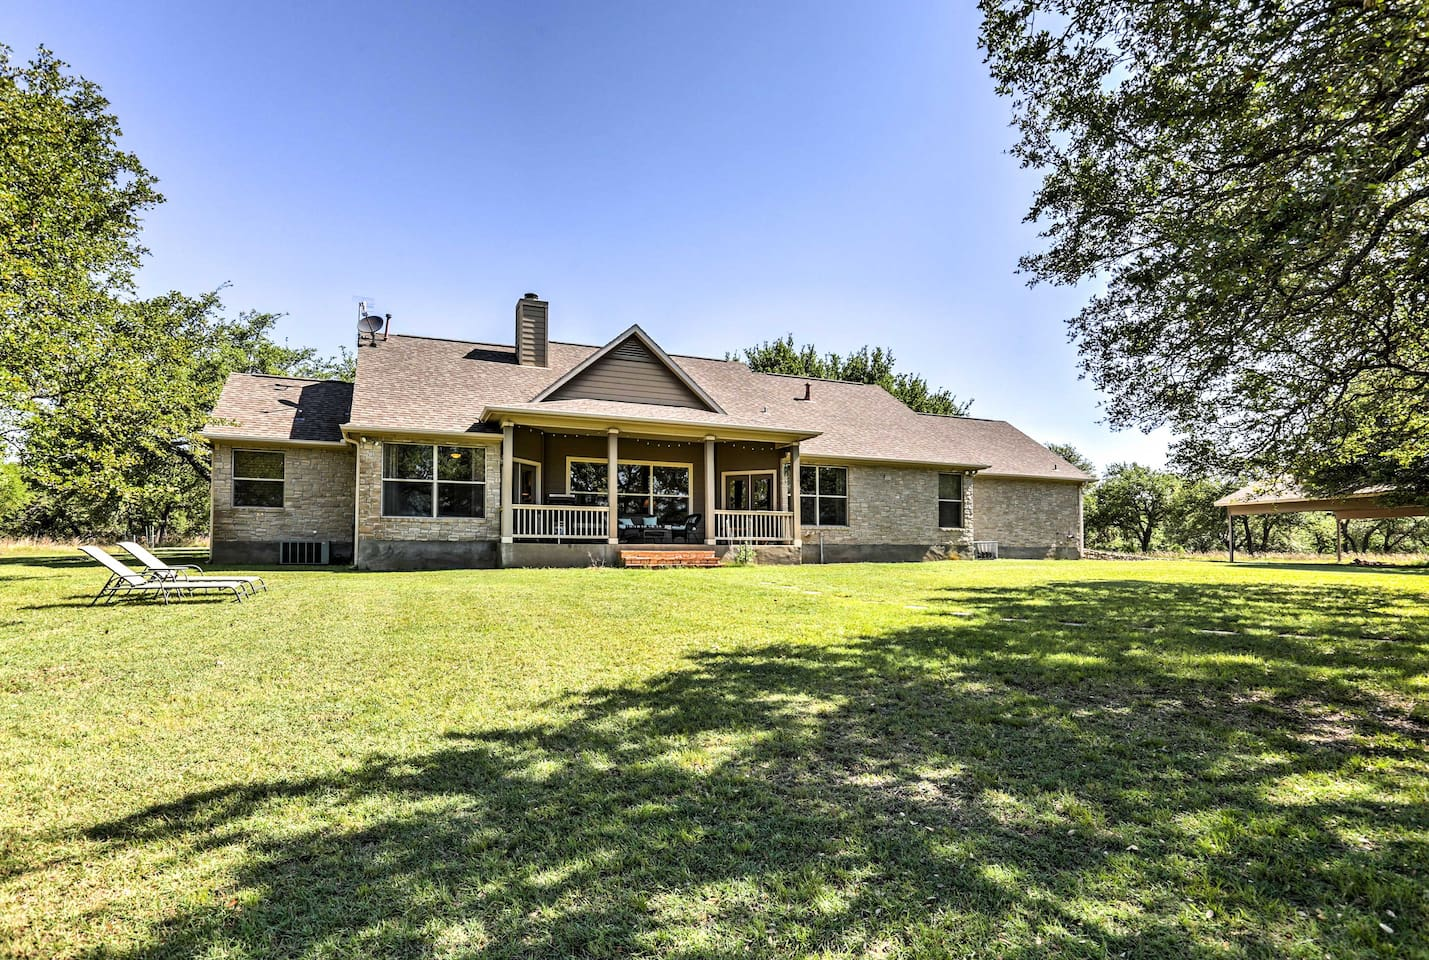 Explore the Texas Hill Country from this beautiful 4-bedroom, 3-bath home.